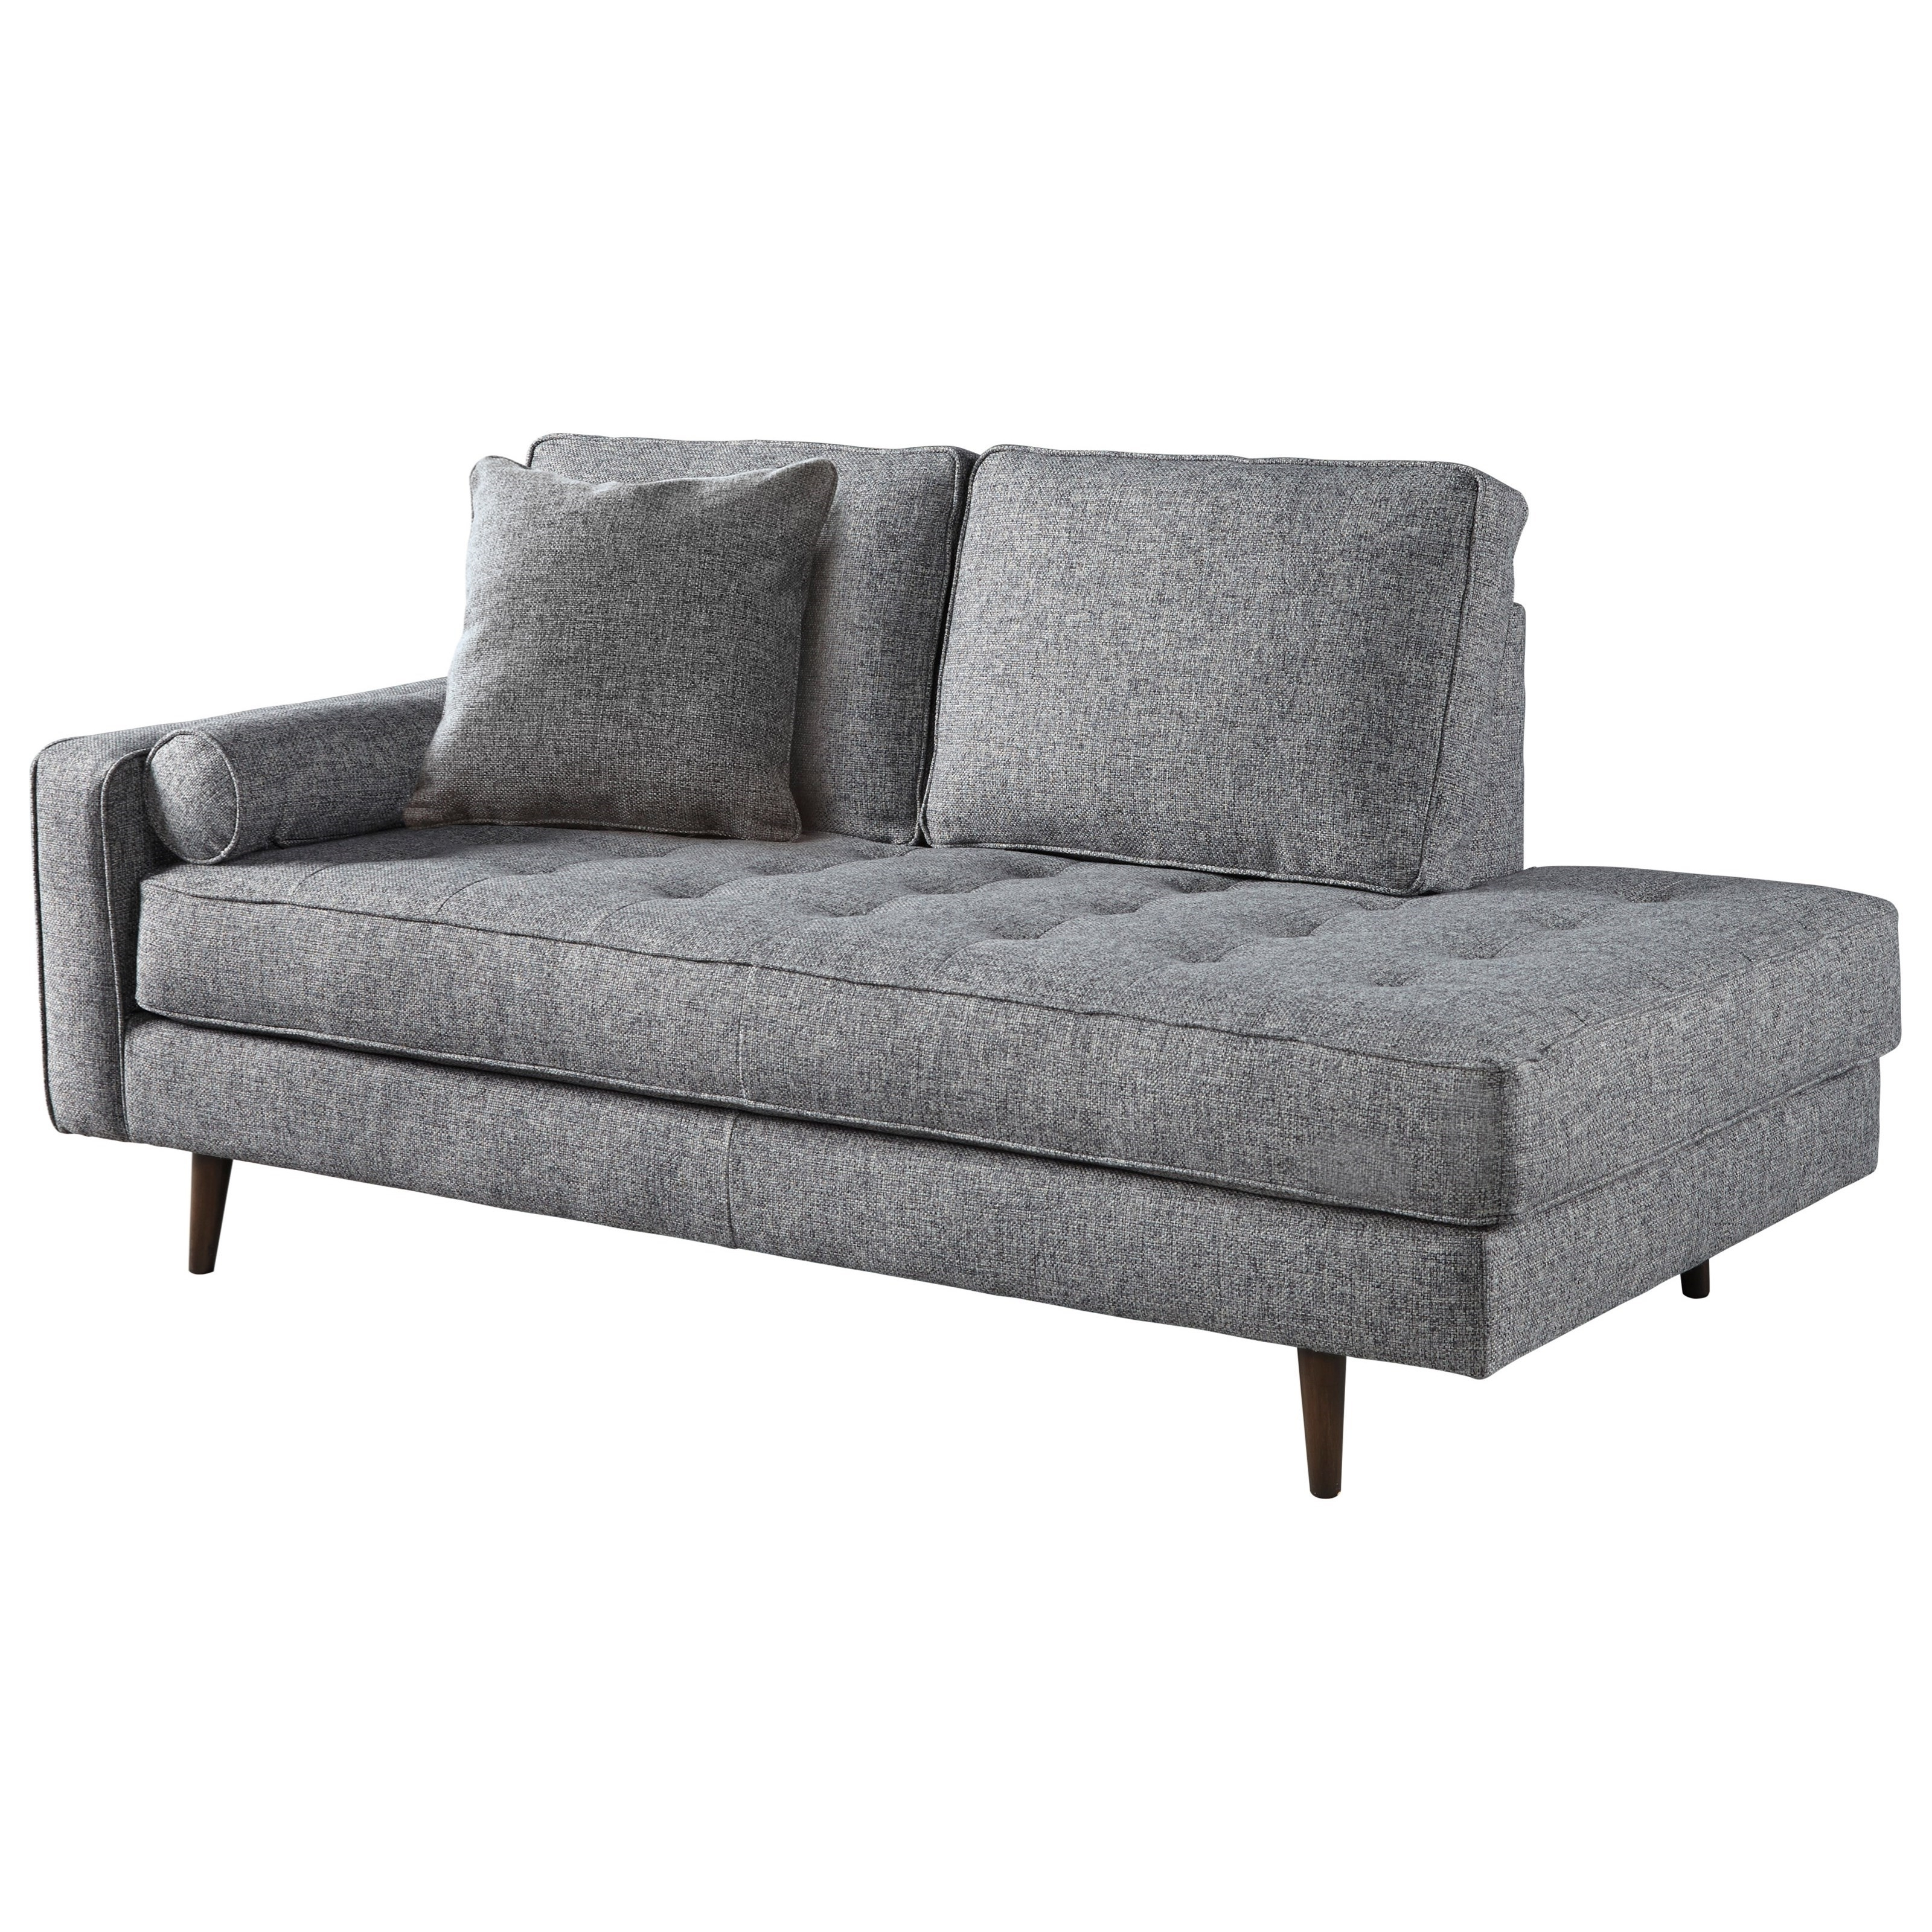 Newest Ashley Furniture Chaise Lounges Pertaining To Shop Chaise Lounges (View 13 of 15)